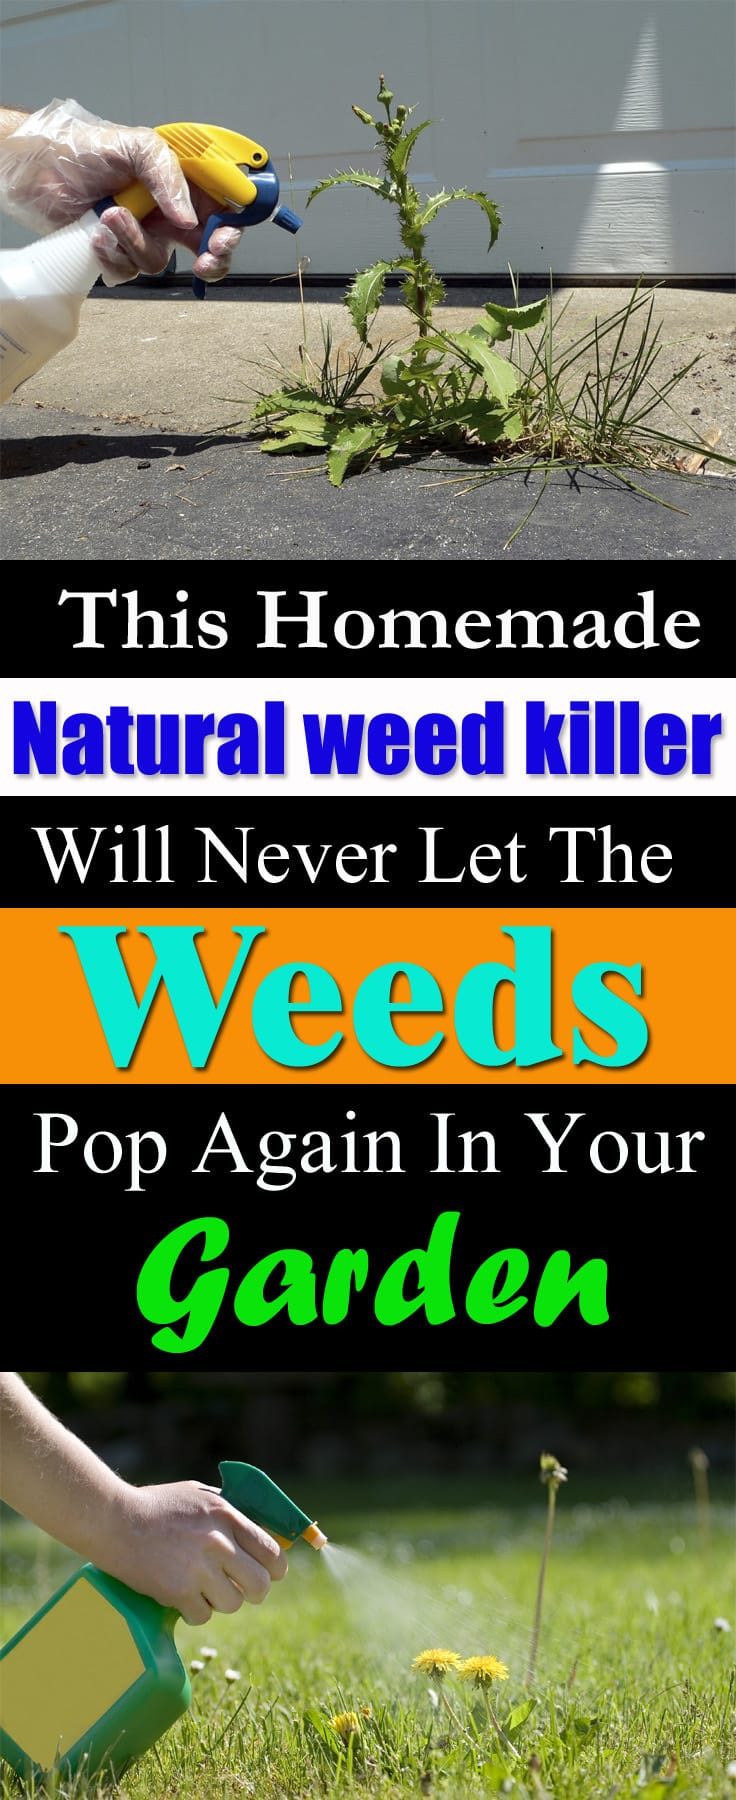 How to kill weeds using vinegar balcony garden web - Get rid weeds using vinegar ...